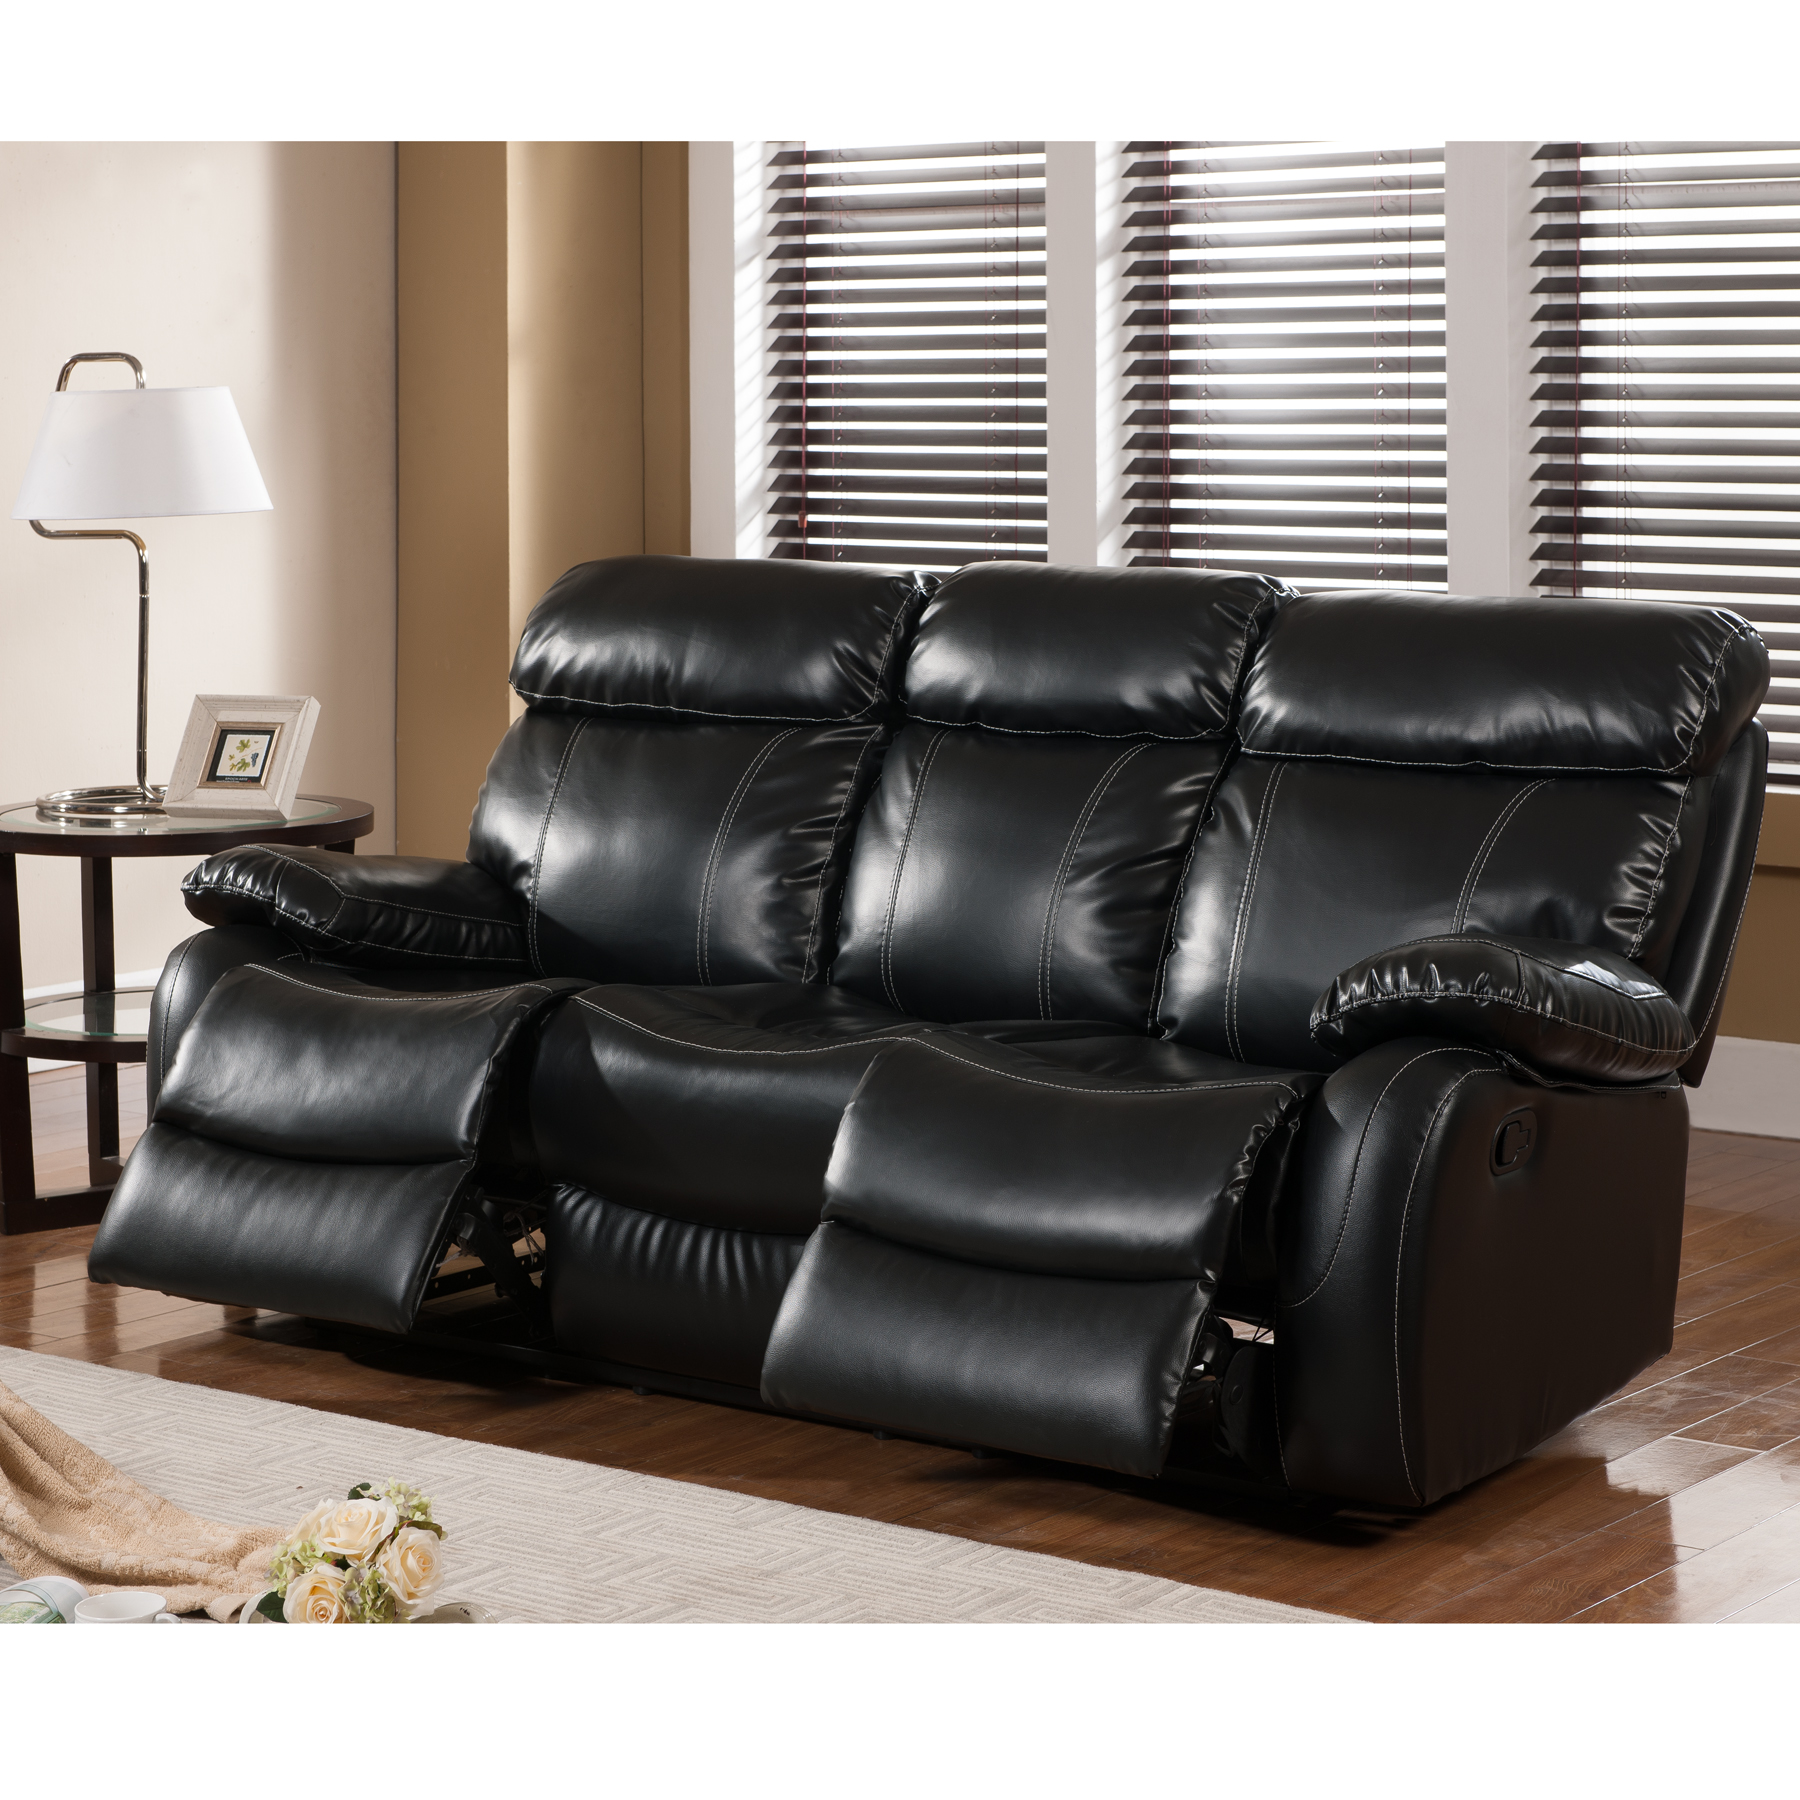 Primo International Penache Leather Upholstered Recliner Sofa